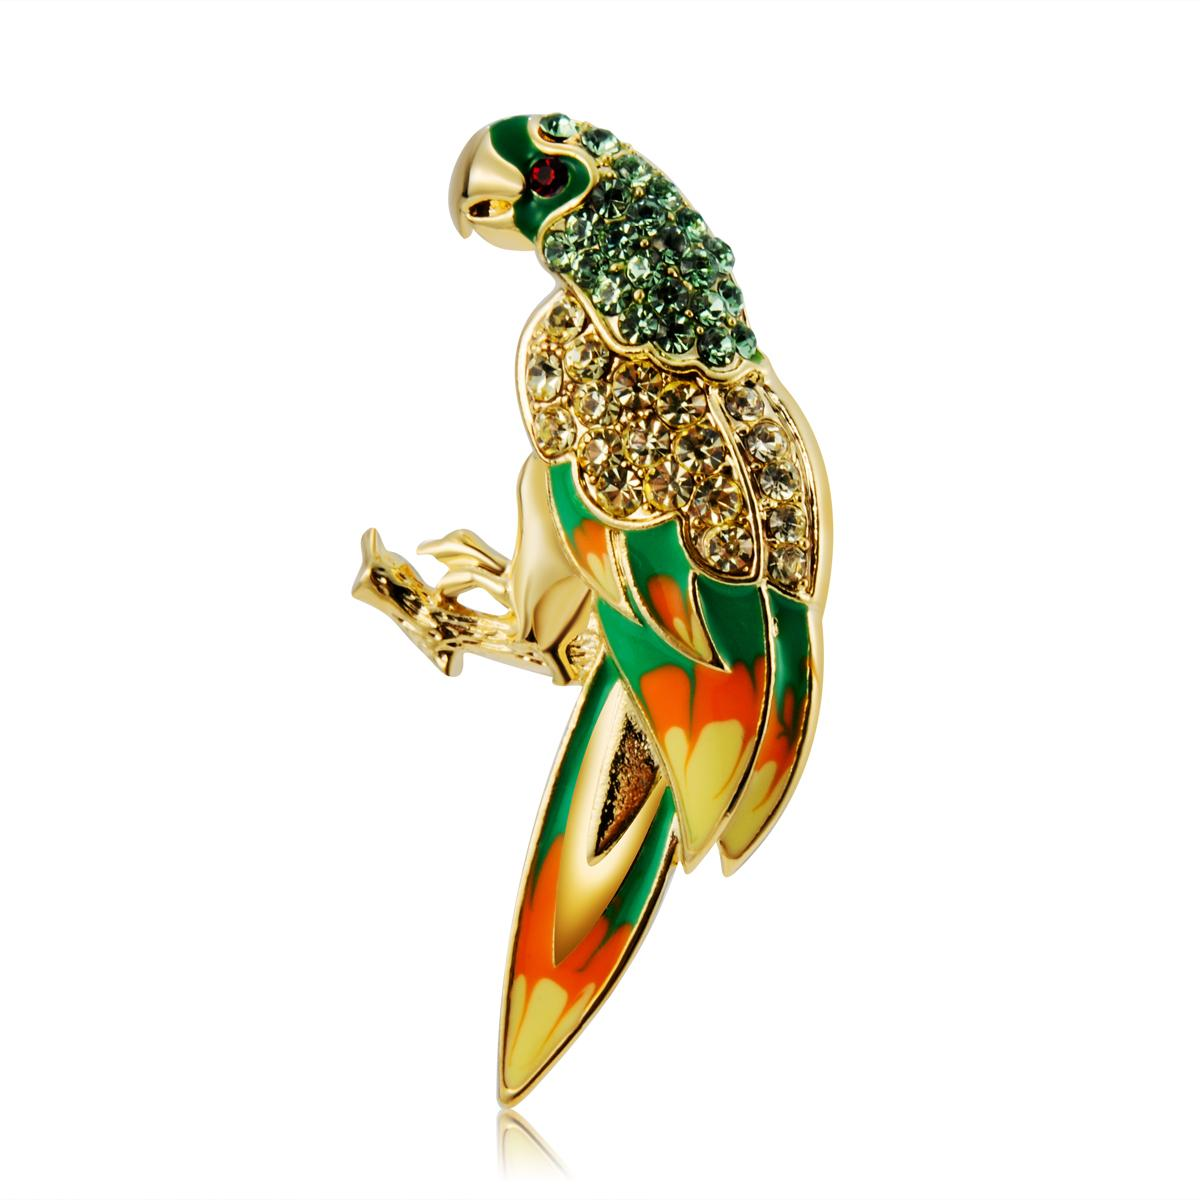 2016 Retail Hot Selling Neoglory Jewelry 18K Gold Plated With Lovely Animal Parrot Crystal Brooches BC-0001